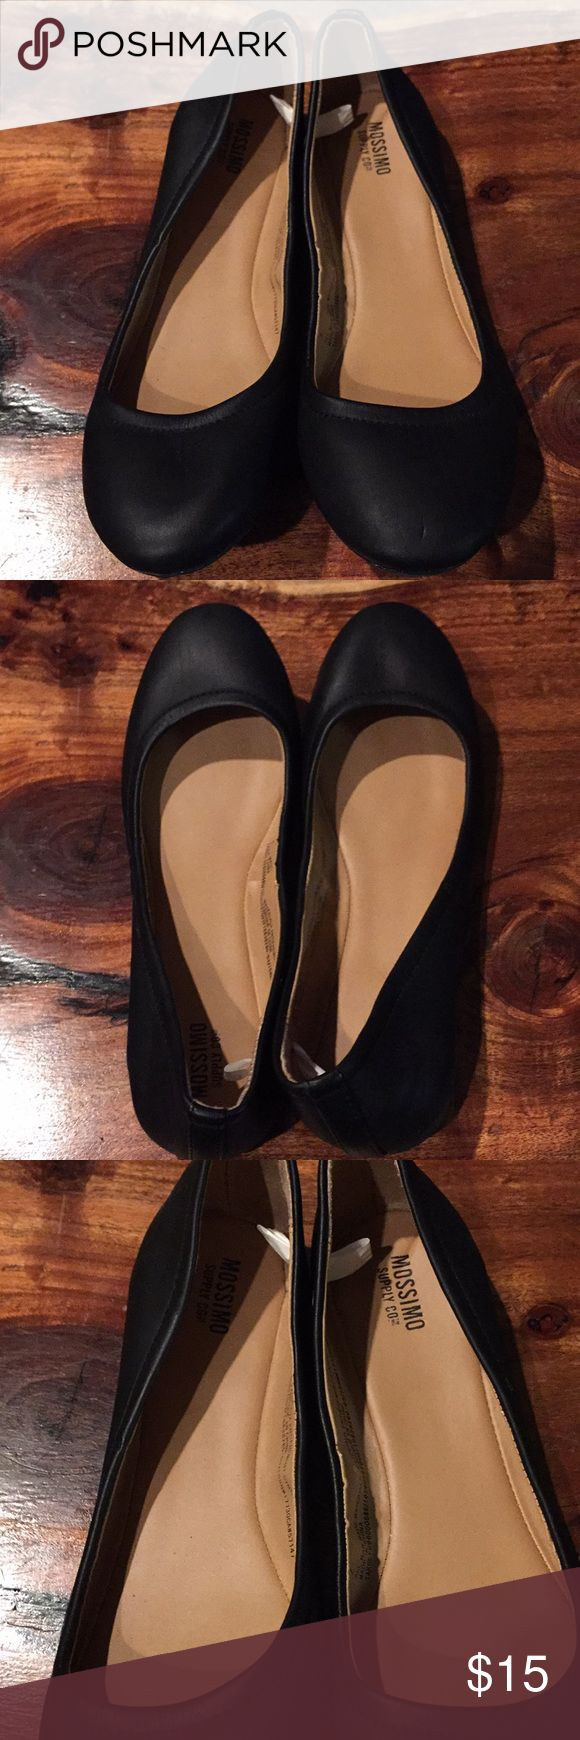 Mossimo Black Slip On Shoes (NWOT) Brand New. Black Slip On Shoes. Size 7. Small finder nail size dint on front left toe area (pictured), from storage. Mossimo Supply Co Shoes Flats & Loafers